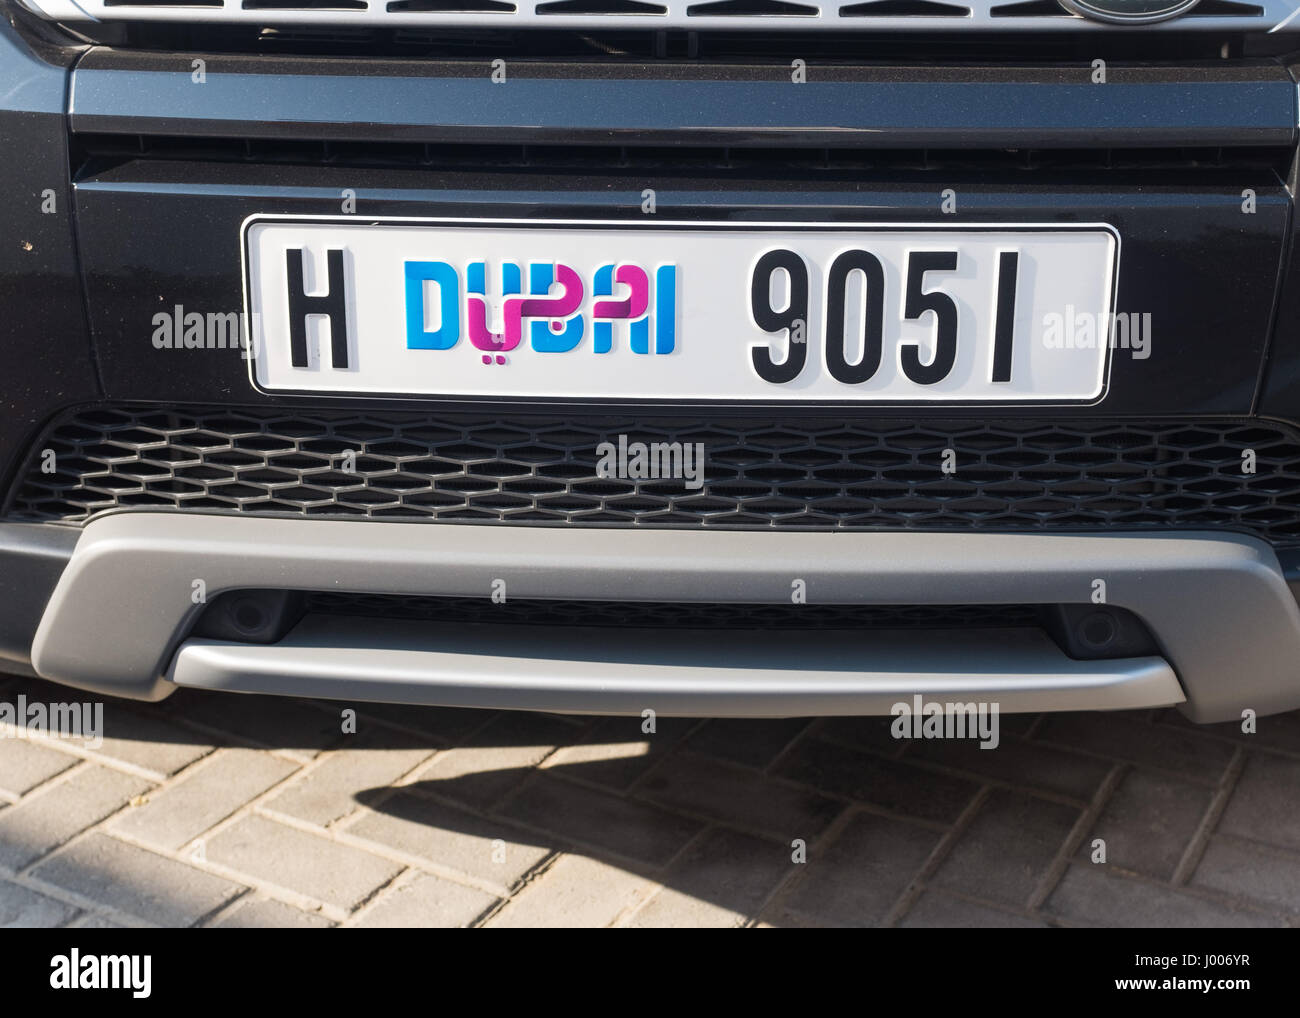 close up of car registration plate in Dubai - Stock Image